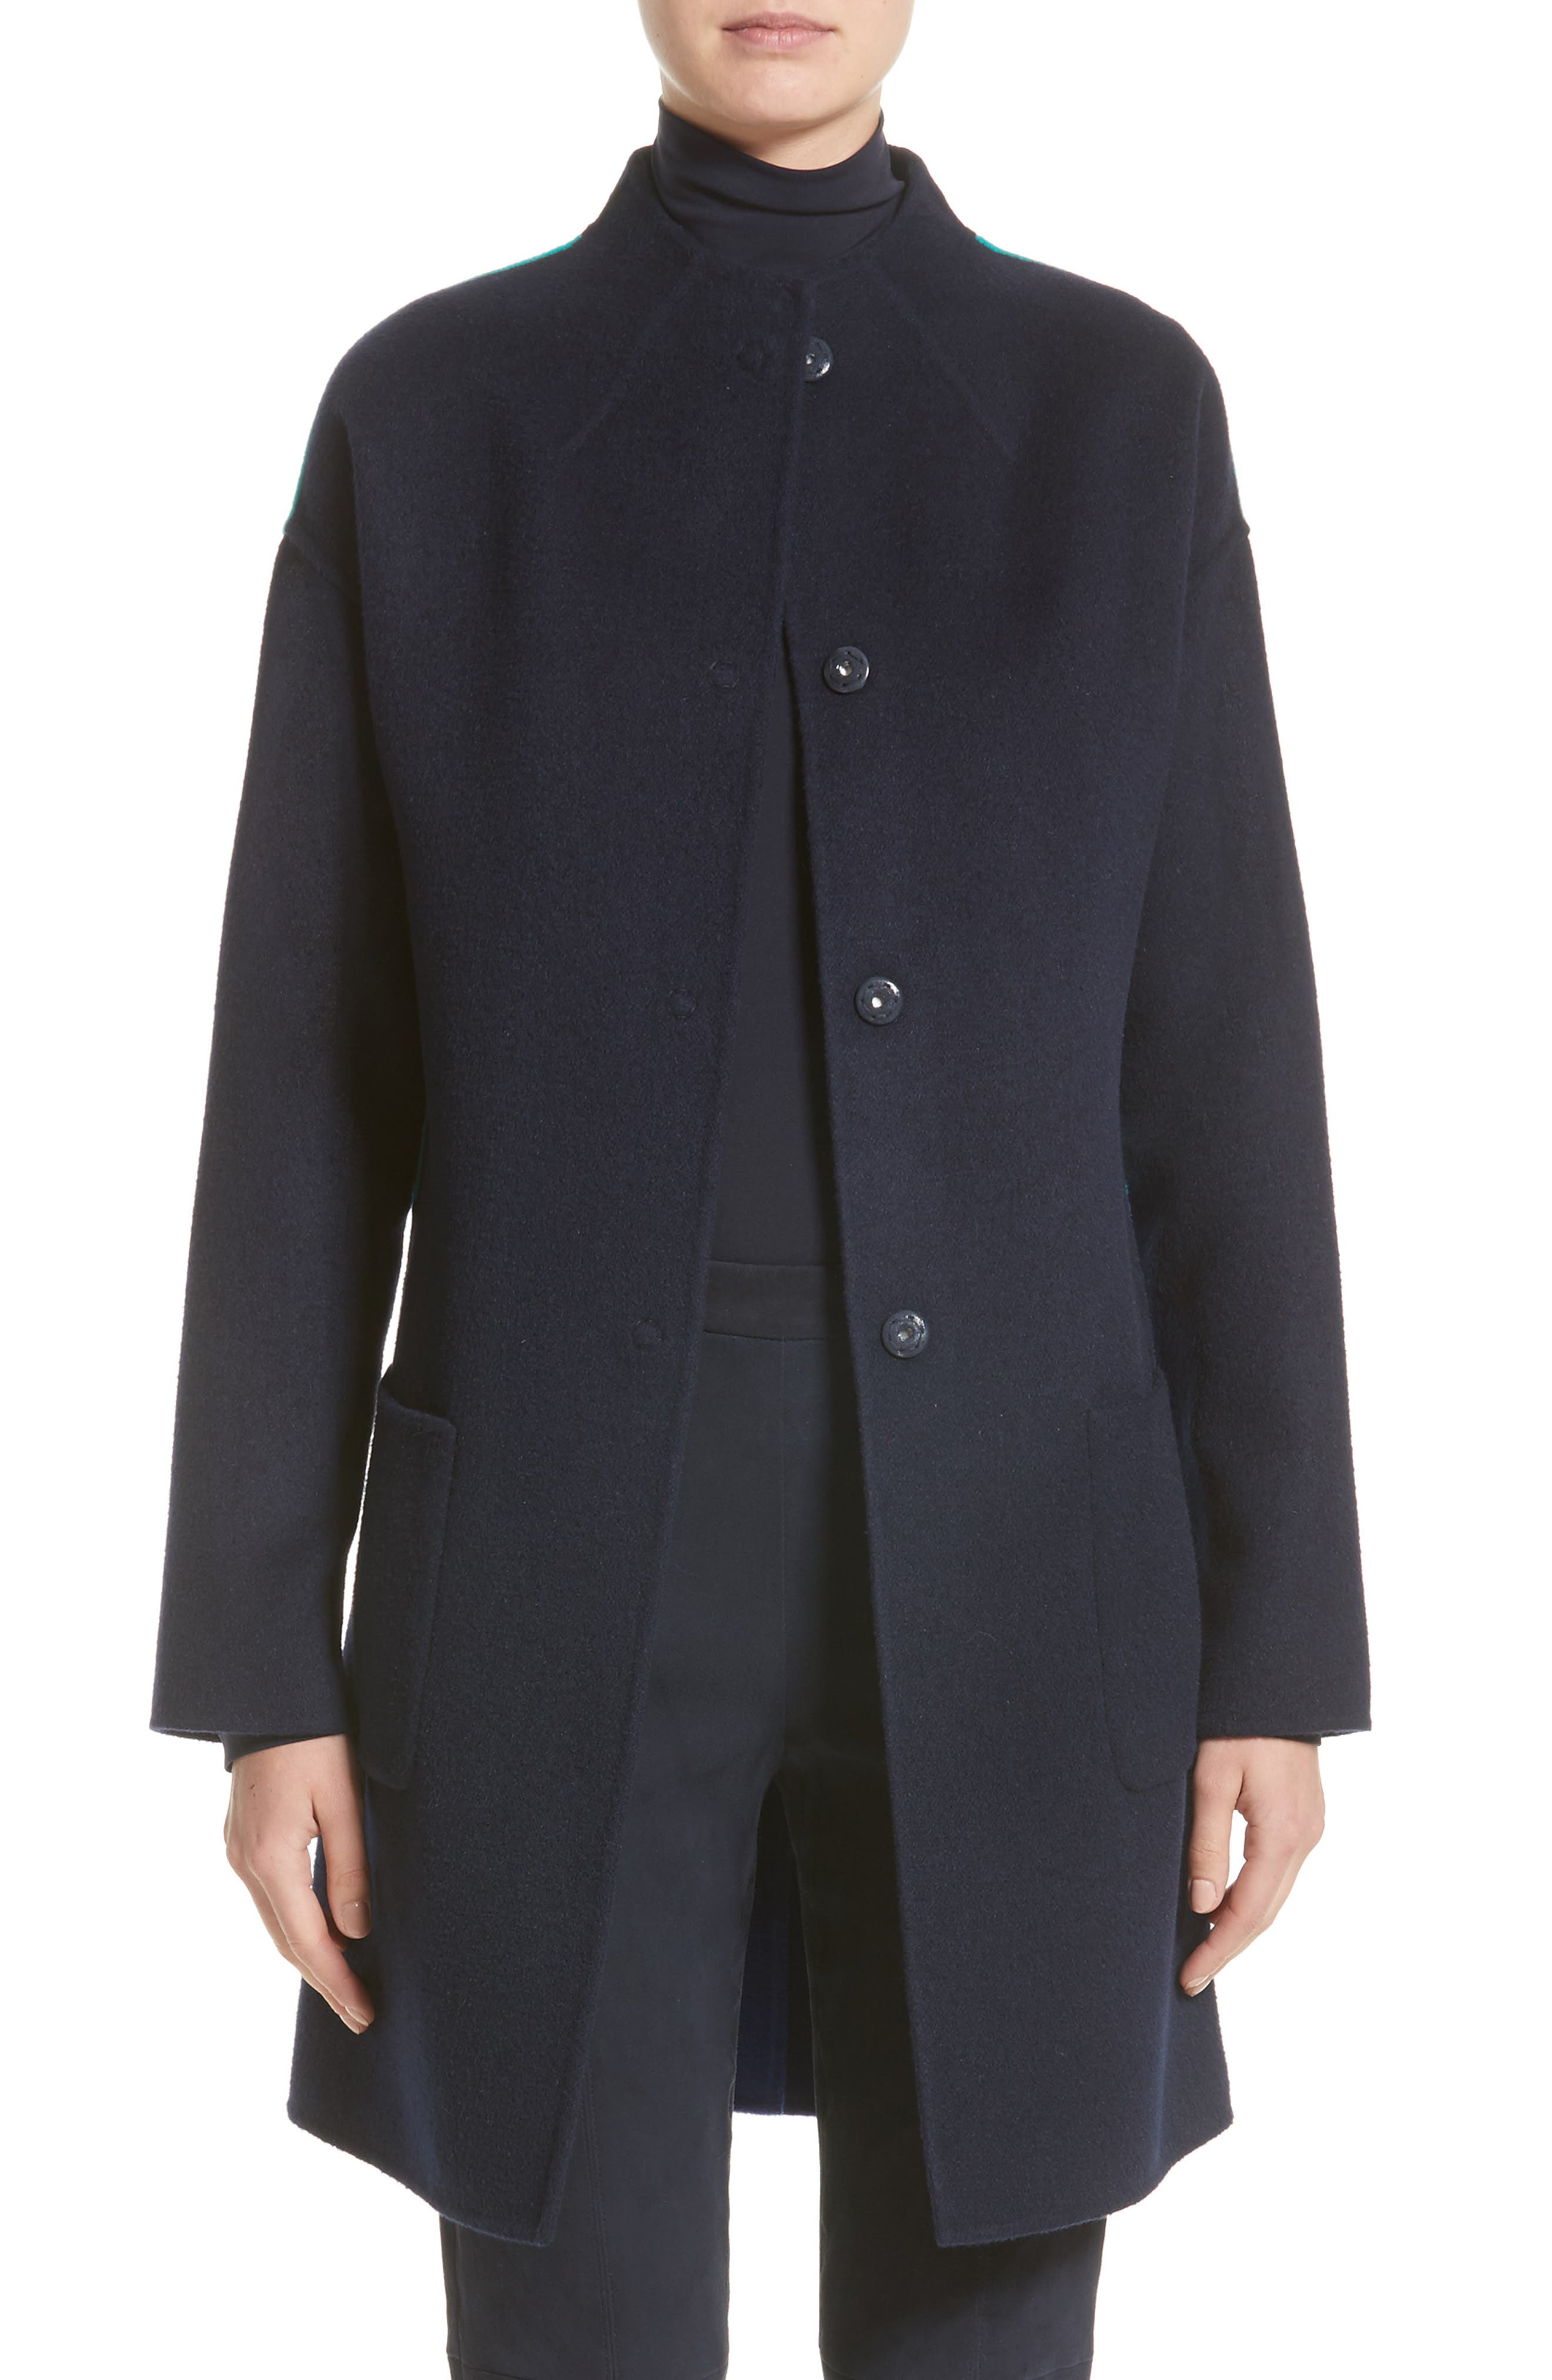 Alternate Image 1 Selected - St. John Collection Colorblock Double Face Wool Blend Coat